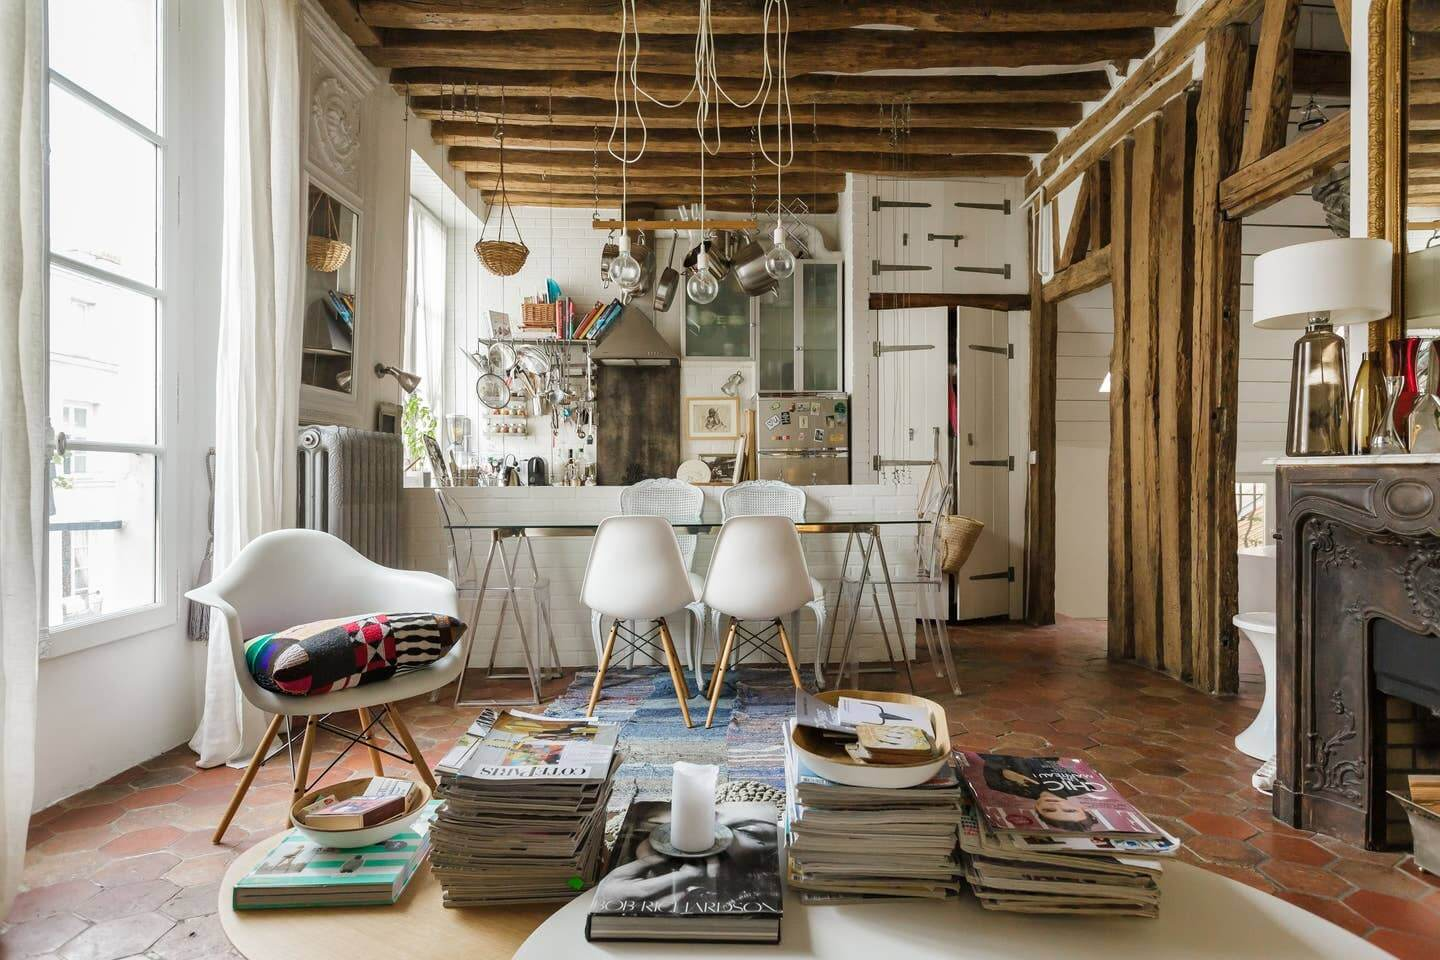 A Cozy Airbnb Apartment in an 18th-Century Building in Paris